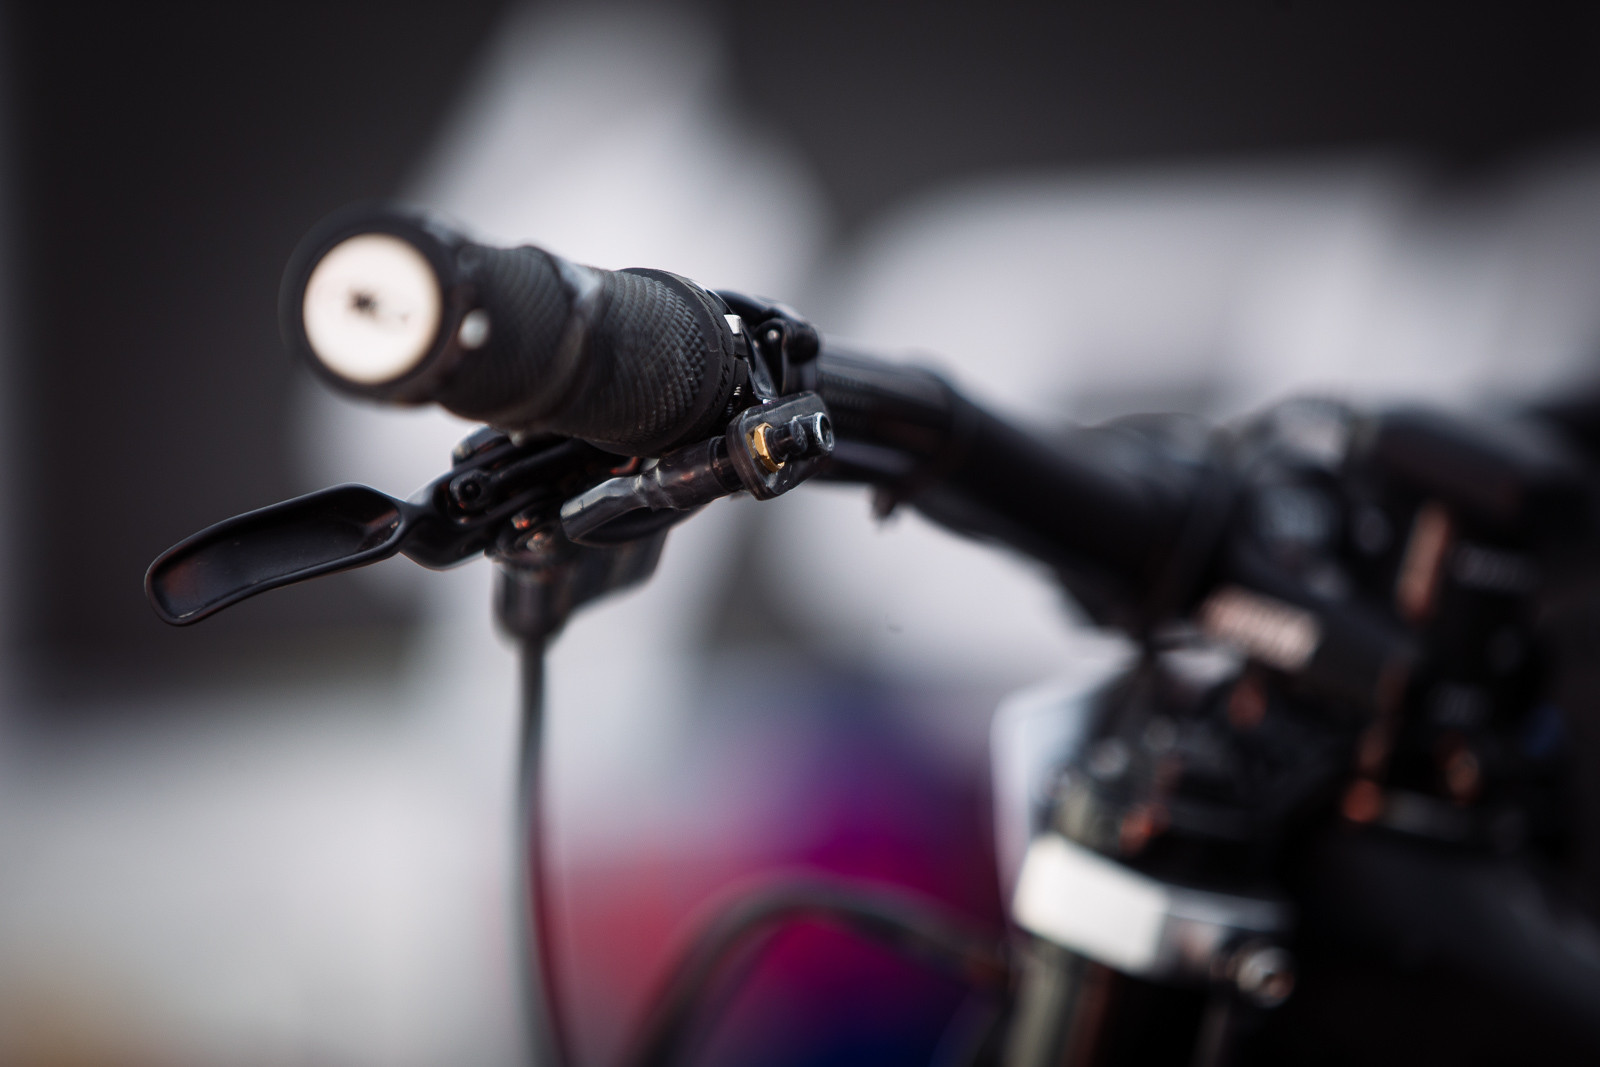 Telemetry Trigger on Loic's Bike - PIT BITS - BDS Fort William - Mountain Biking Pictures - Vital MTB